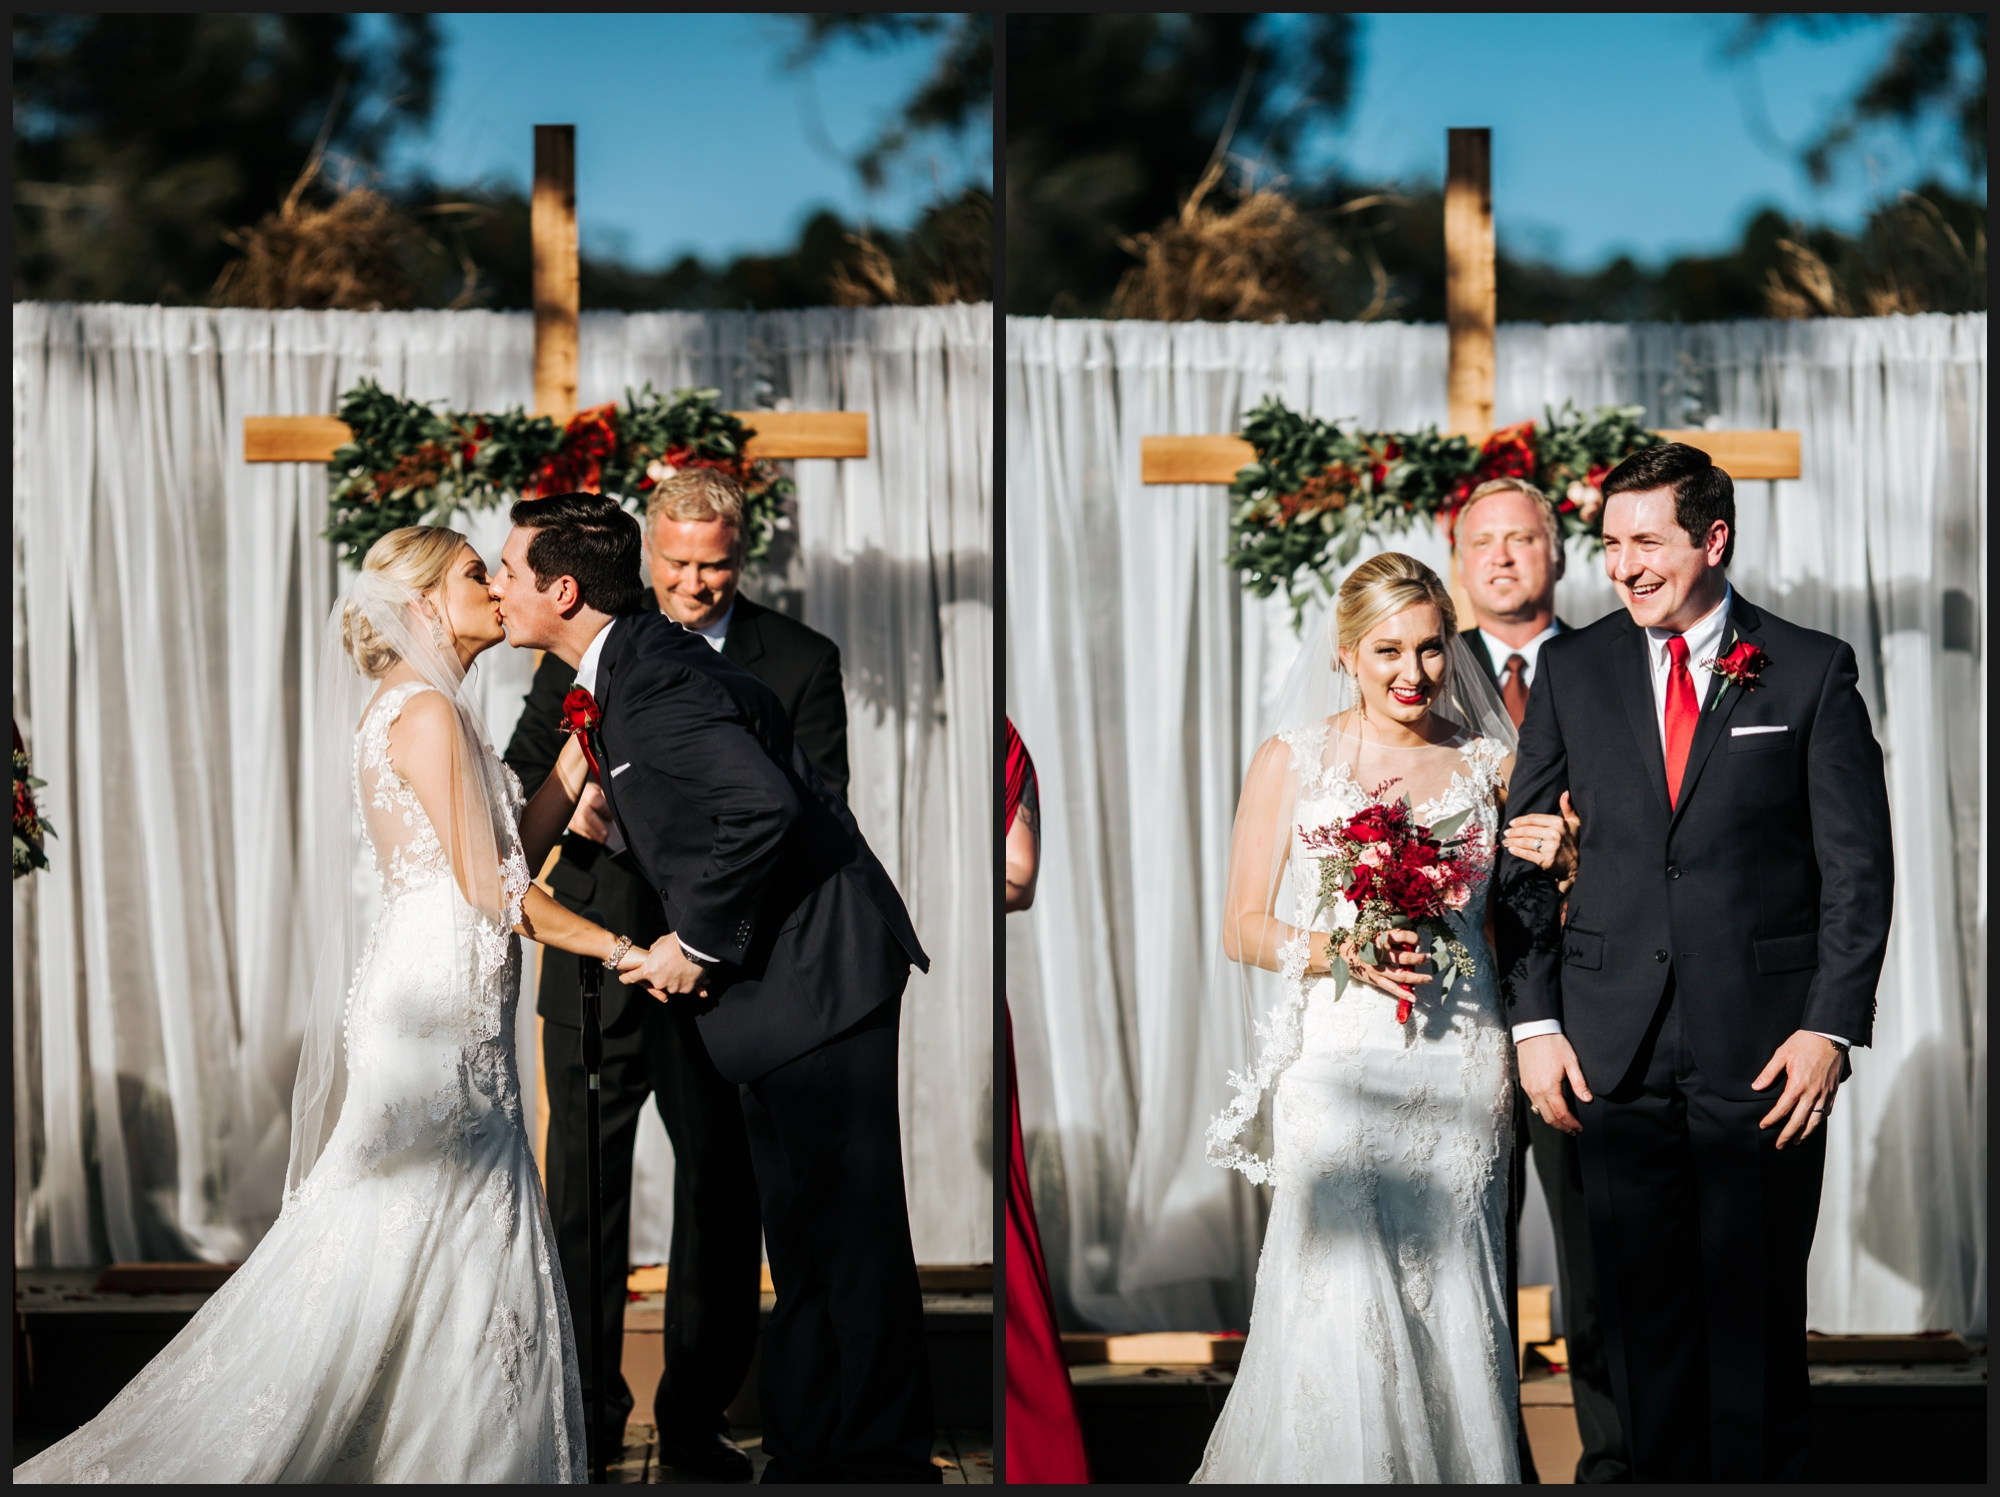 MitchandKatieOrlandoWeddingPhotographer_0009.jpg